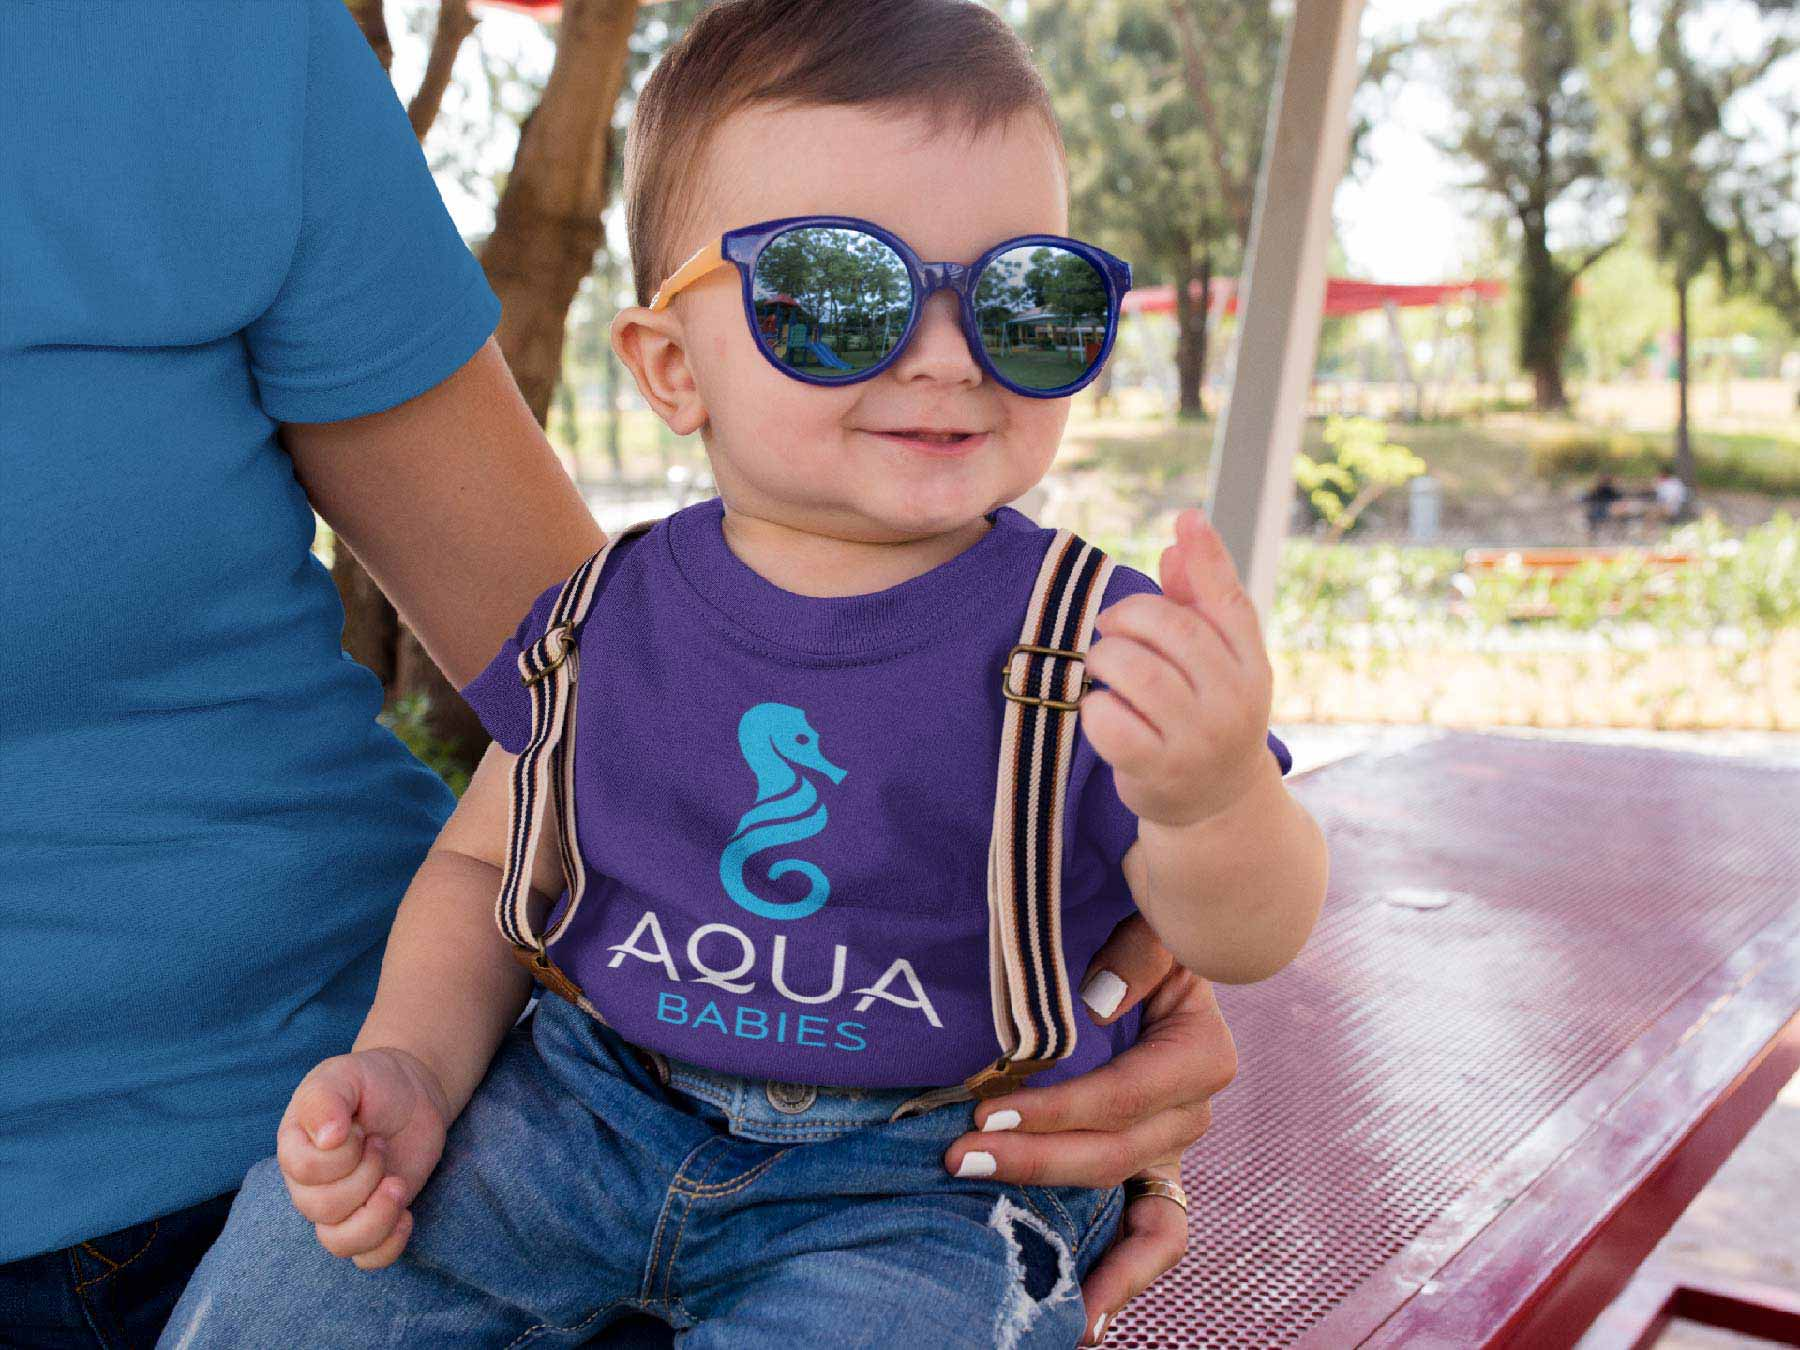 Child wearing Aqua Babies T-shirt